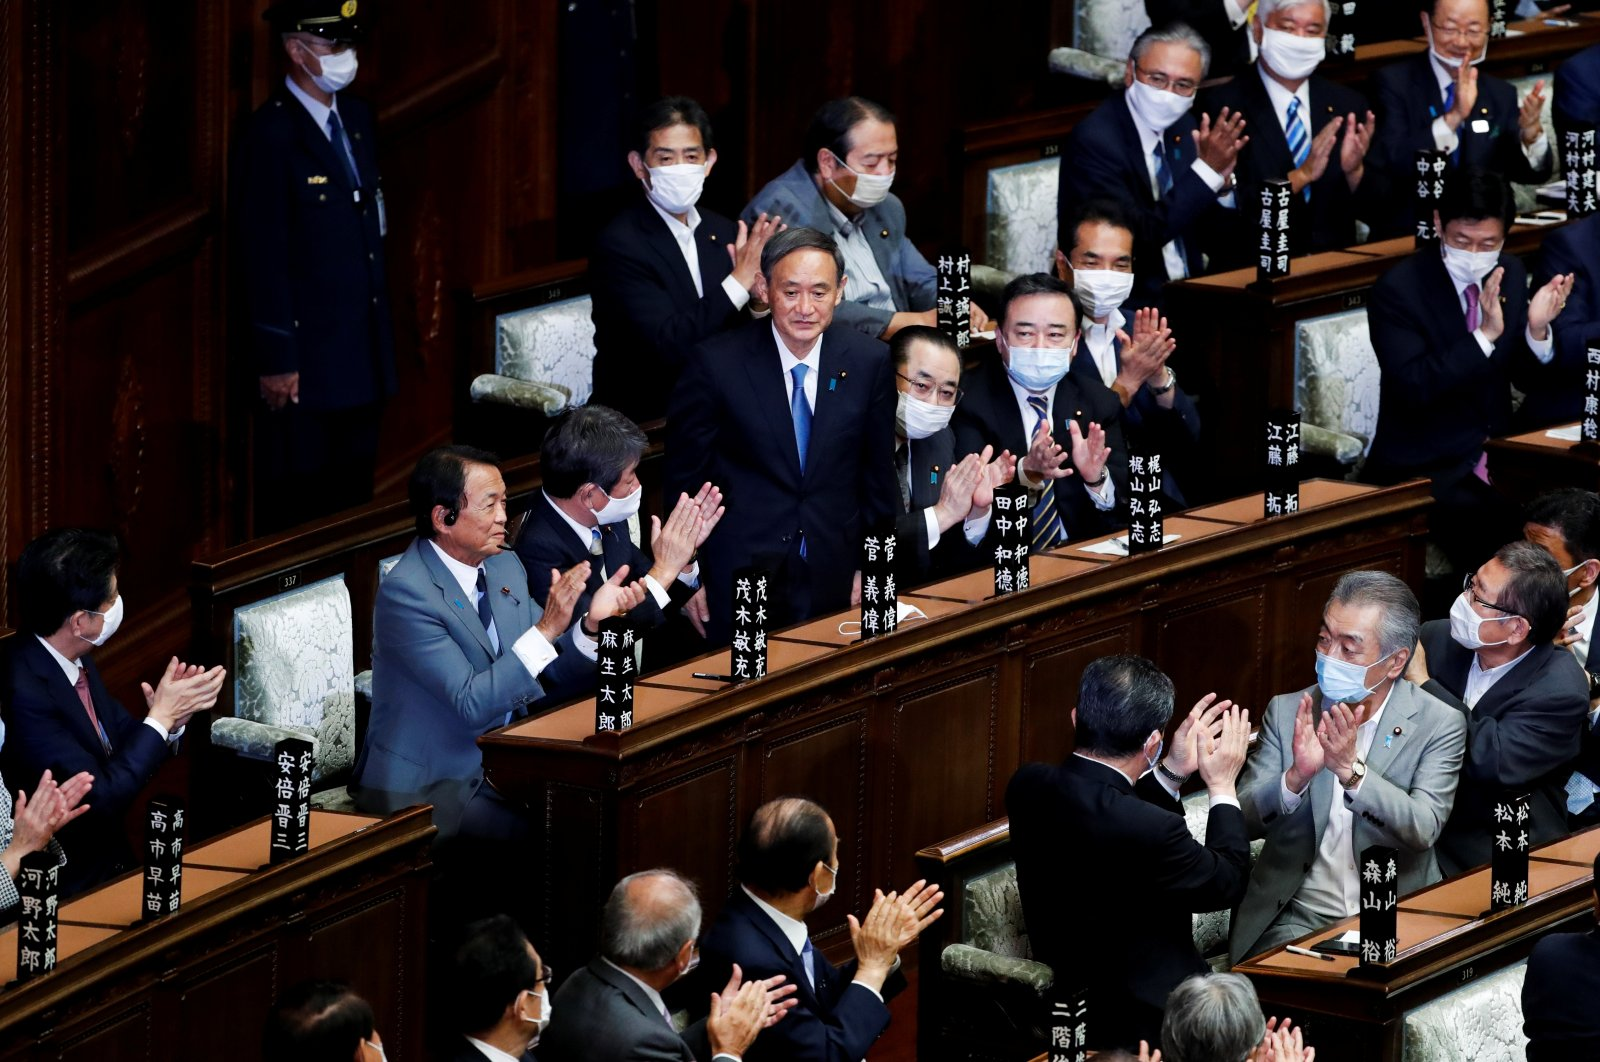 Japan's newly elected Prime Minister Yoshihide Suga stands in the lower house of parliament in Tokyo, Japan, Sept. 16, 2020. (Reuters Photo)